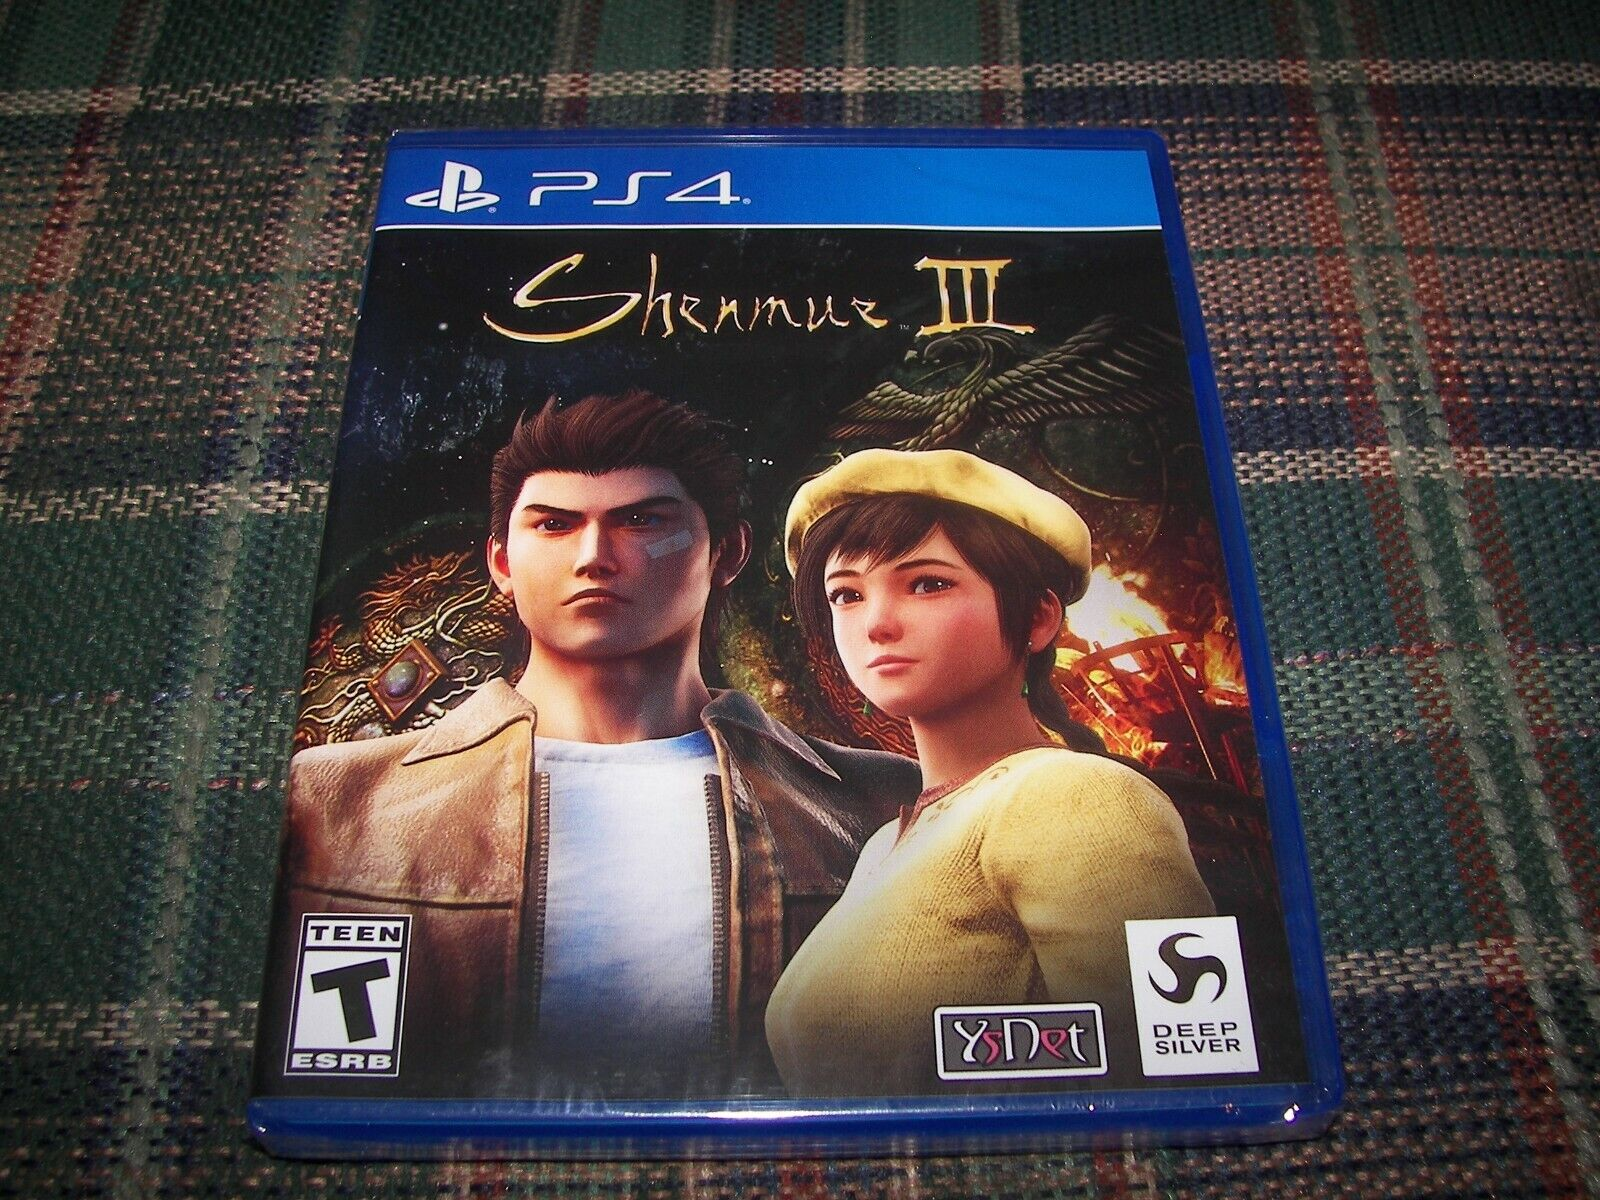 Shenmue III 3 Sony PlayStation 4 PS4 Game BRAND NEW  - $9.99